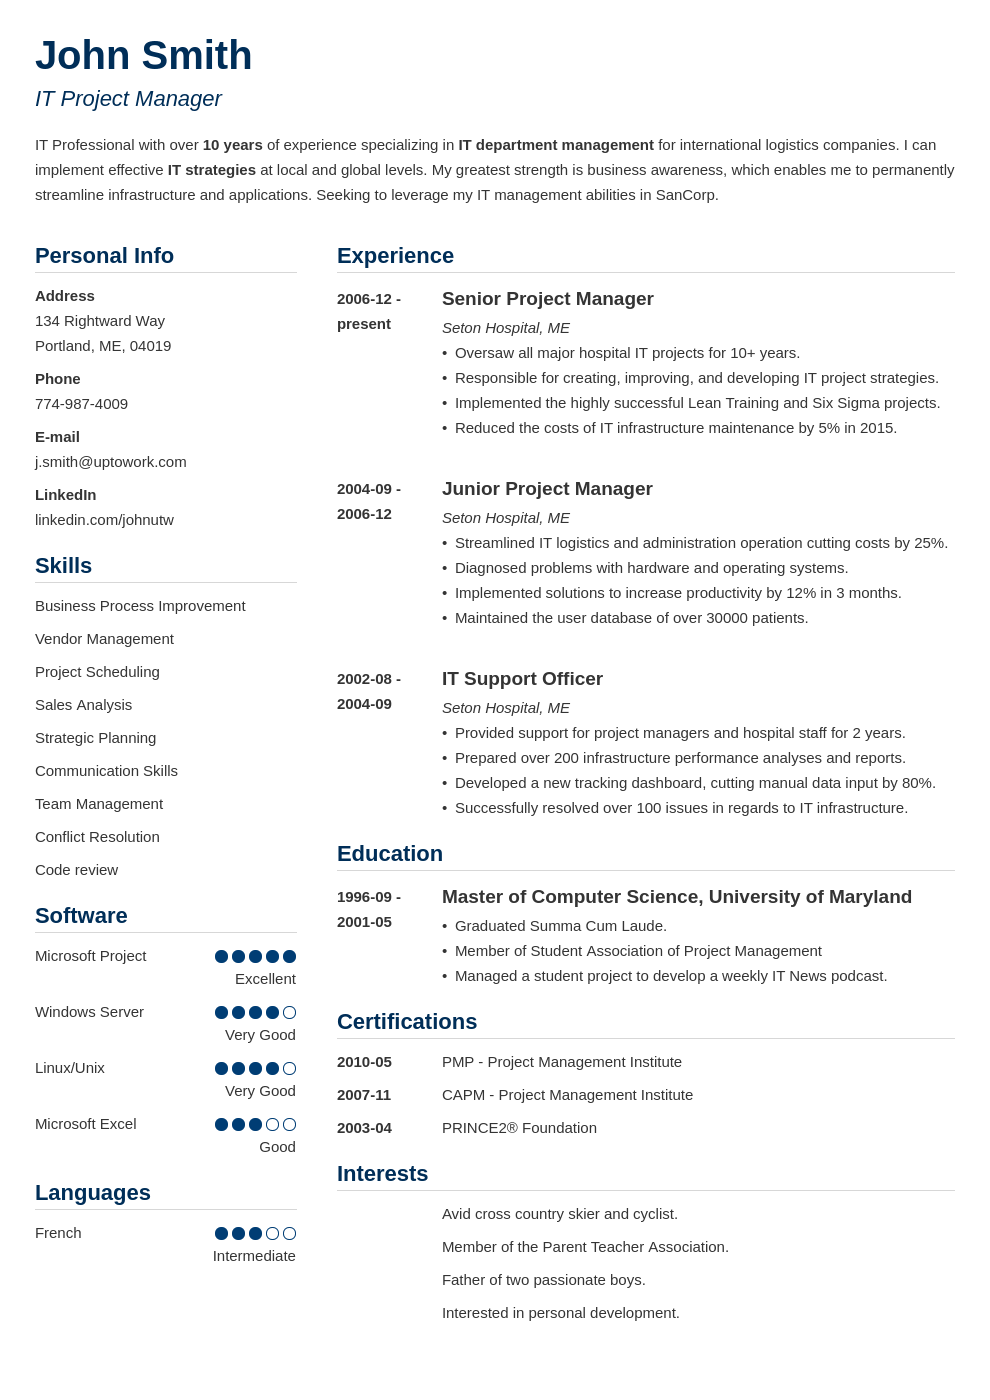 150+ Best CV Examples for 2019 [Sample Curriculum Vitae for Any Job]